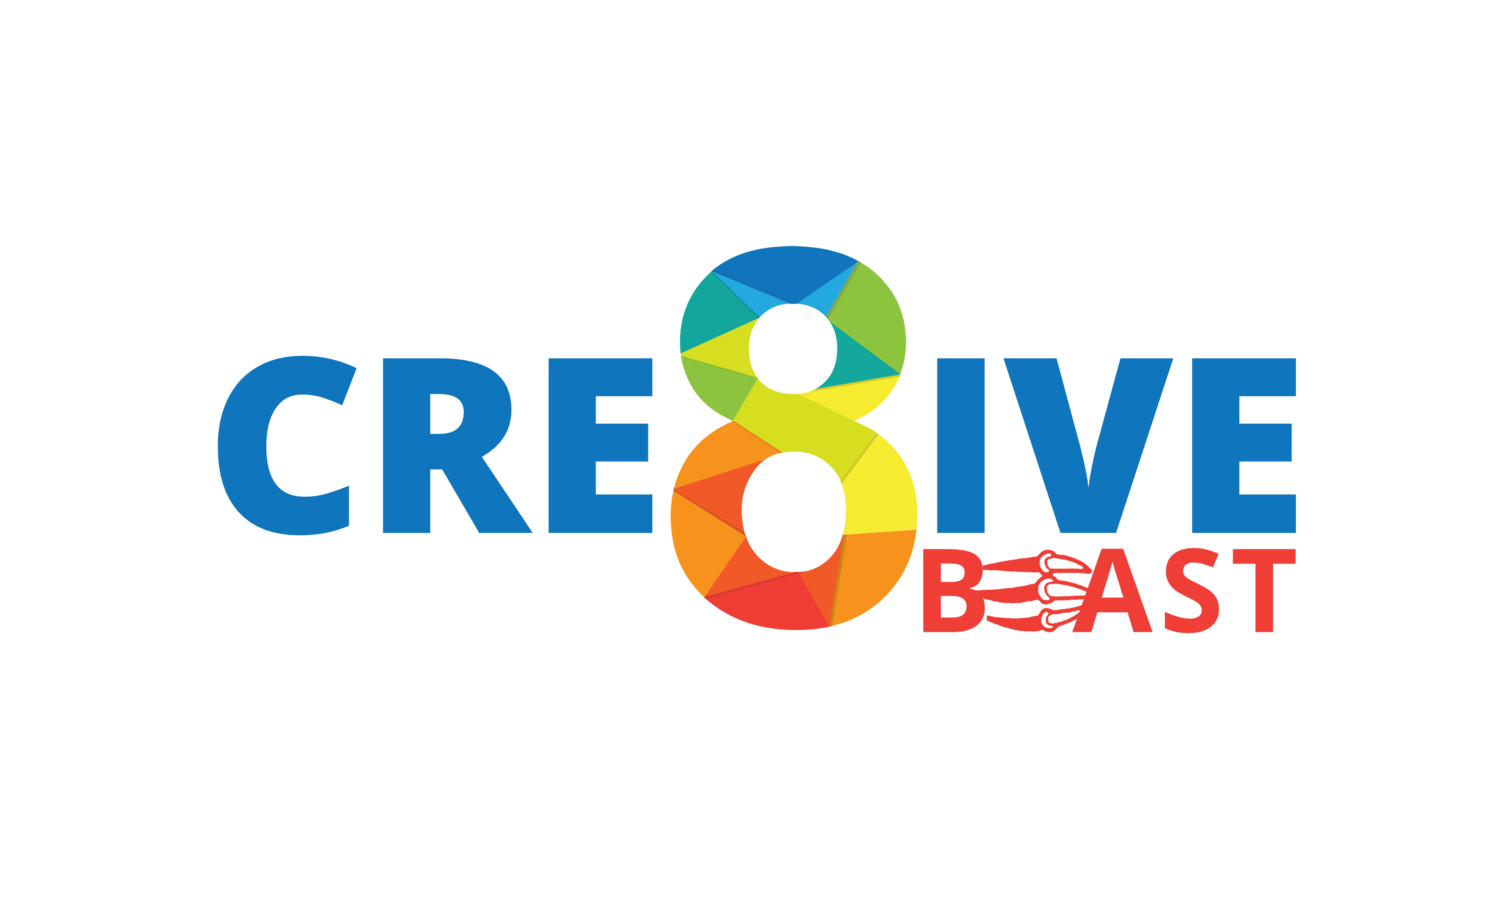 Cre8ive Beast